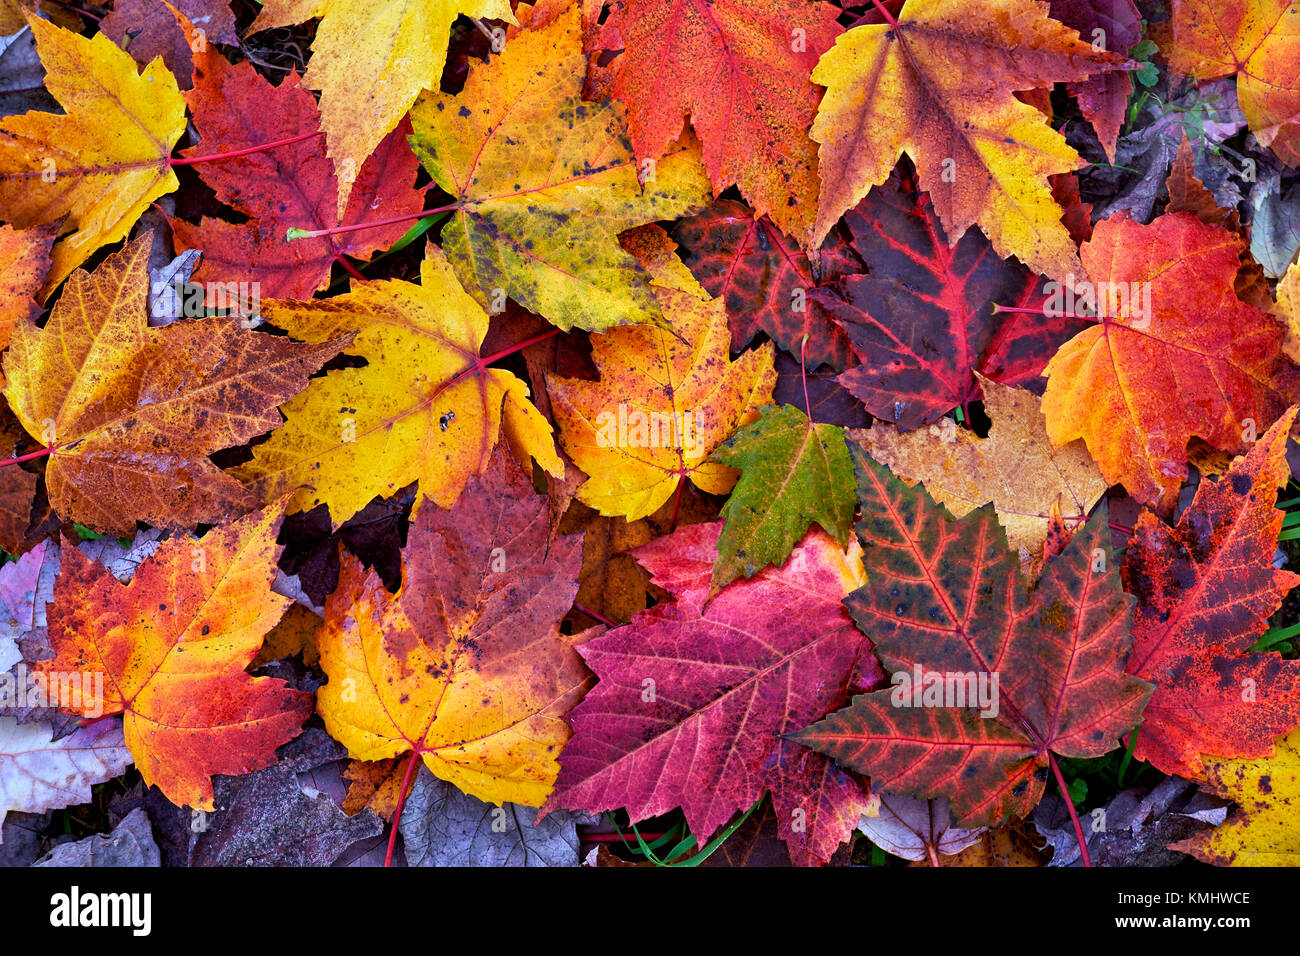 Autumn leaves.Colorful fall tones: yellow, ocher, brown, red, orange,green. - Stock Image